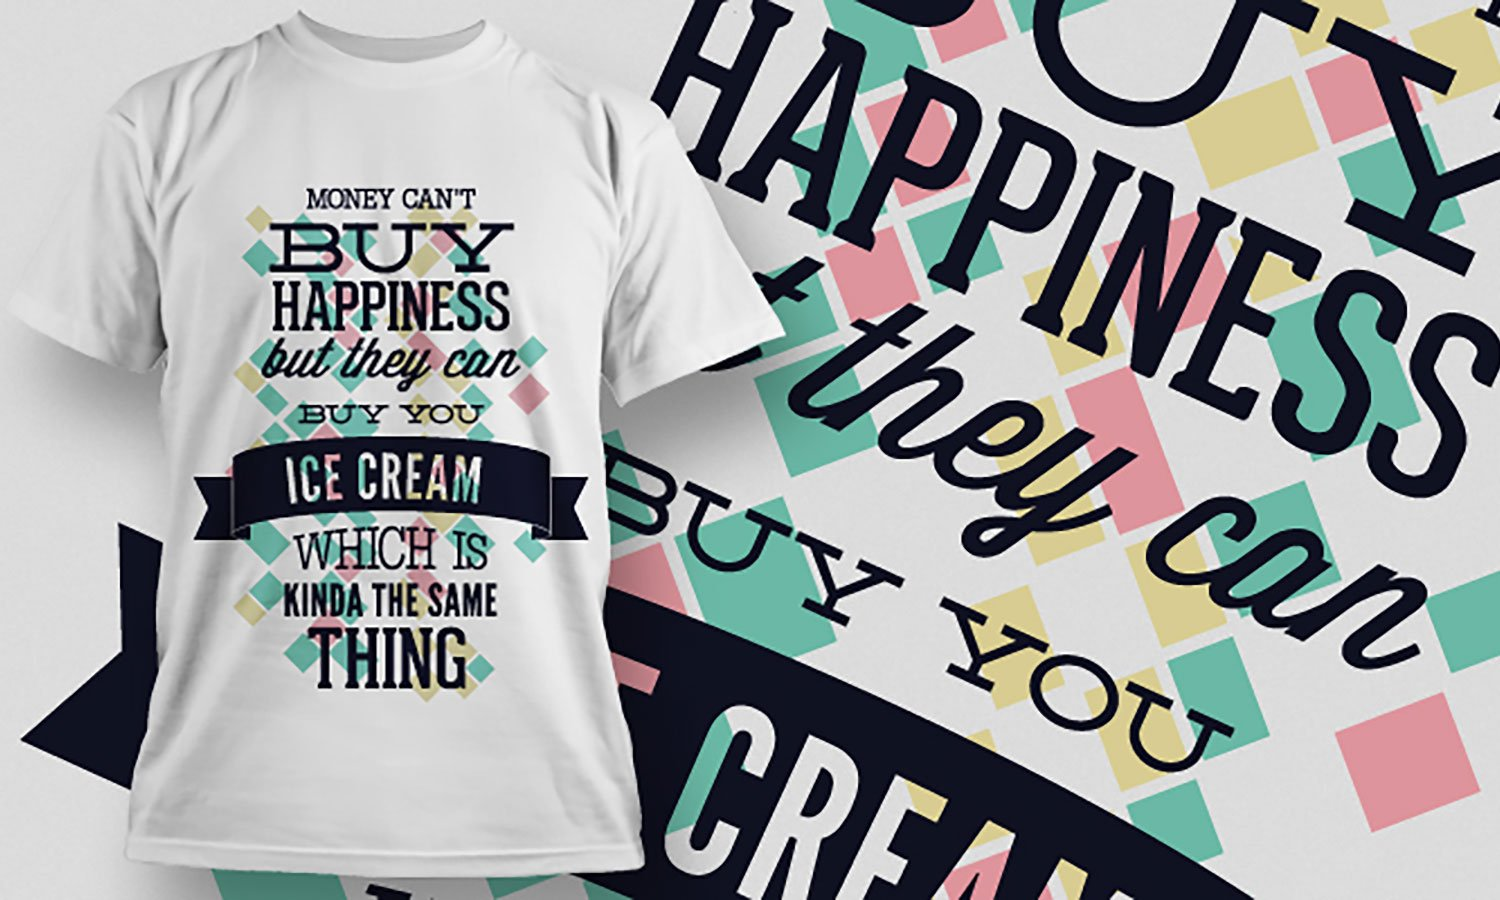 Ice Cream - Printed T-Shirt for Men, Women and Kids - TS349